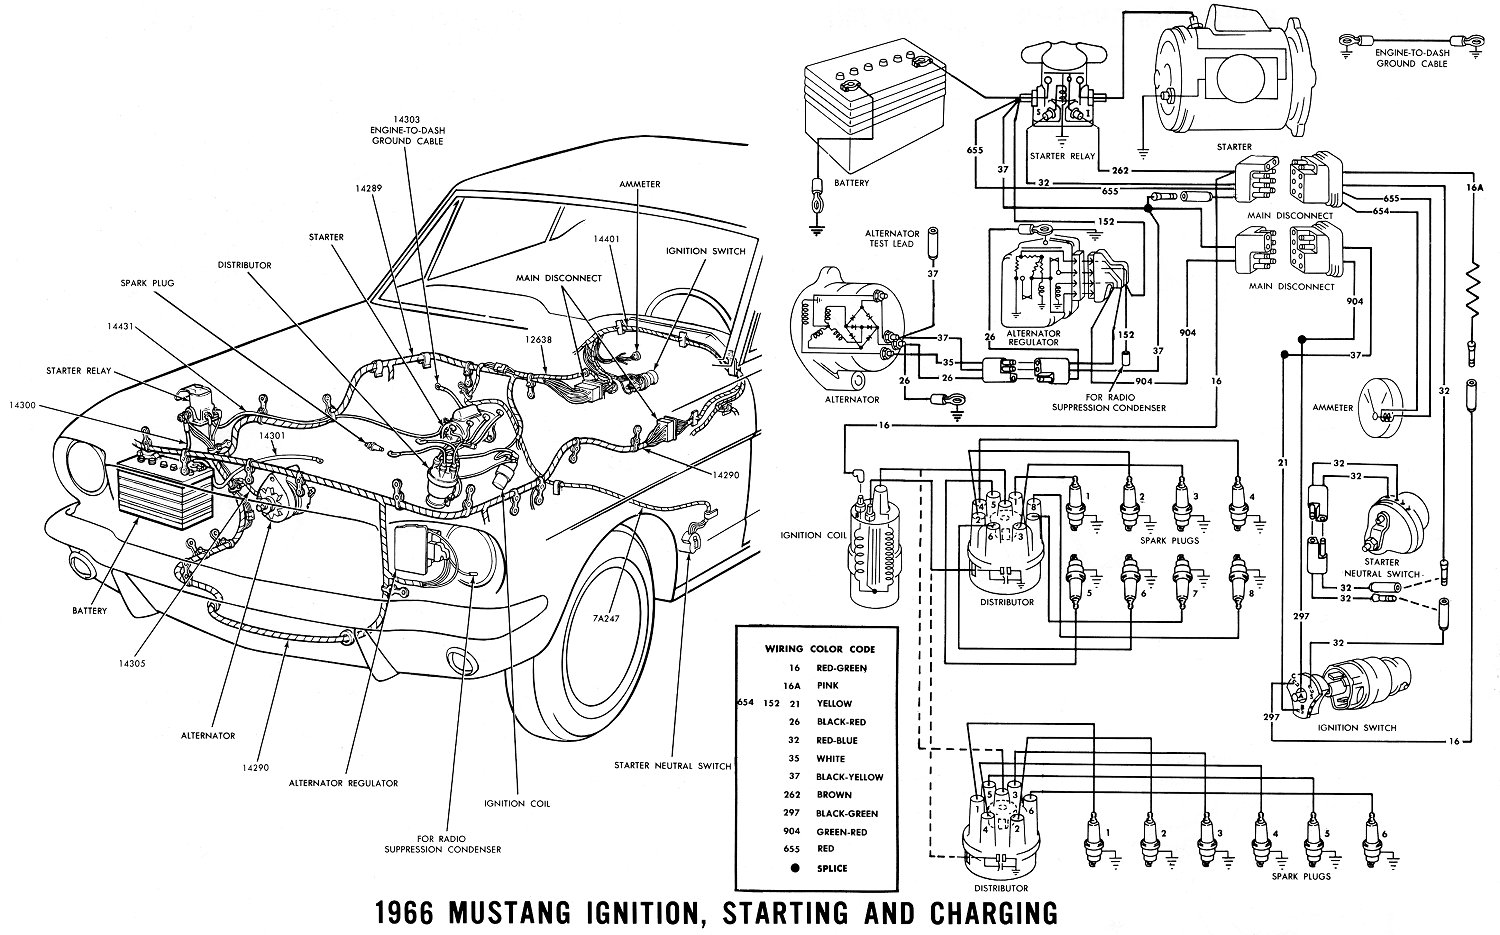 hight resolution of 1966 mustang wiring diagrams average joe restoration 1966 mustang wiper motor wiring 1966 mustang engine wiring